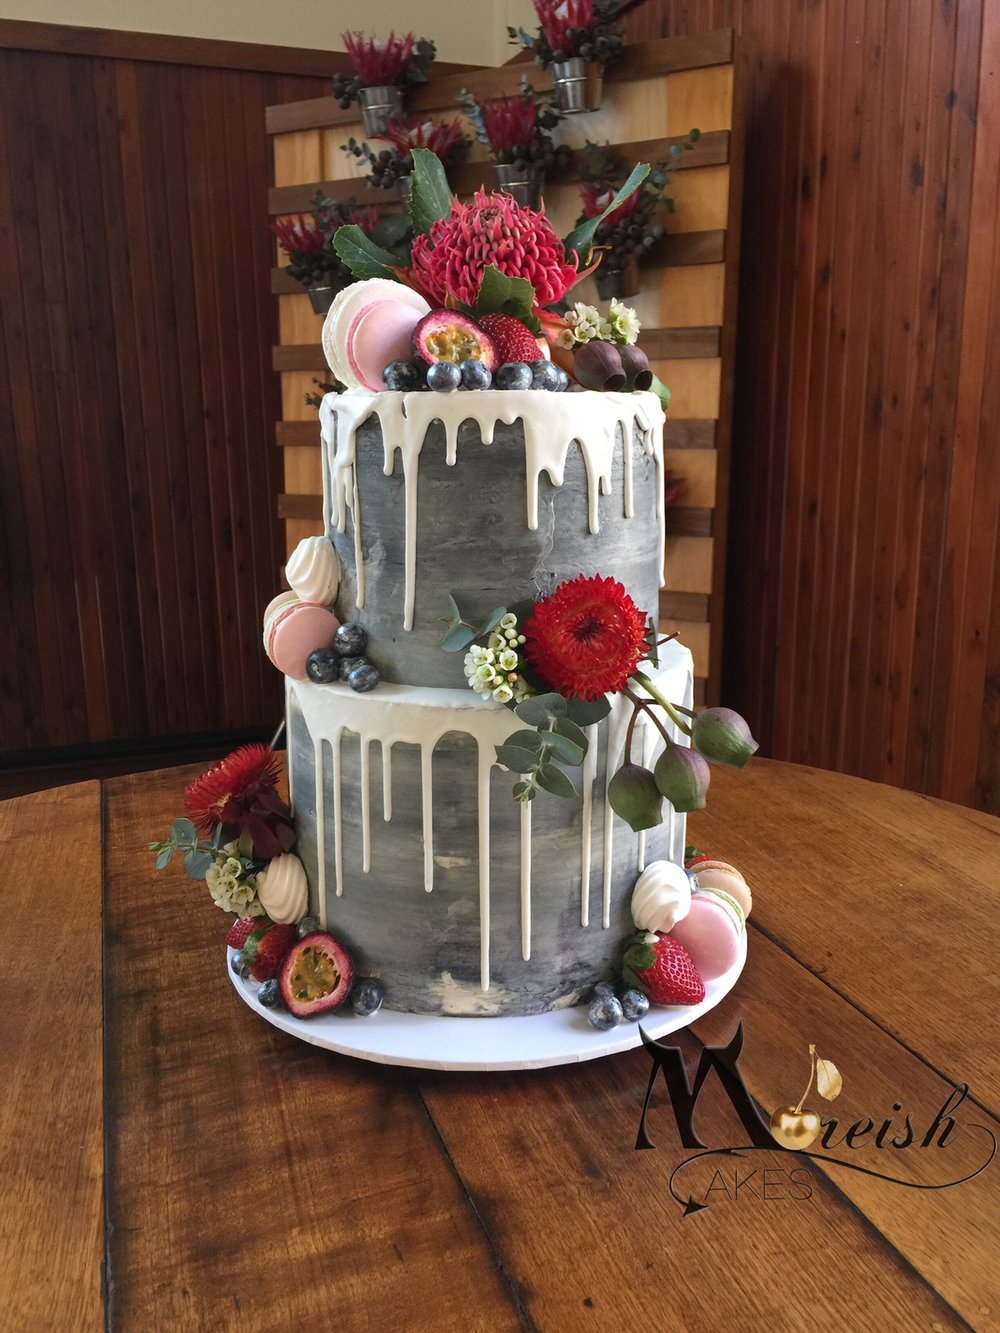 Married At First Sight Season 5 2018 Monochrome Drip Cake With